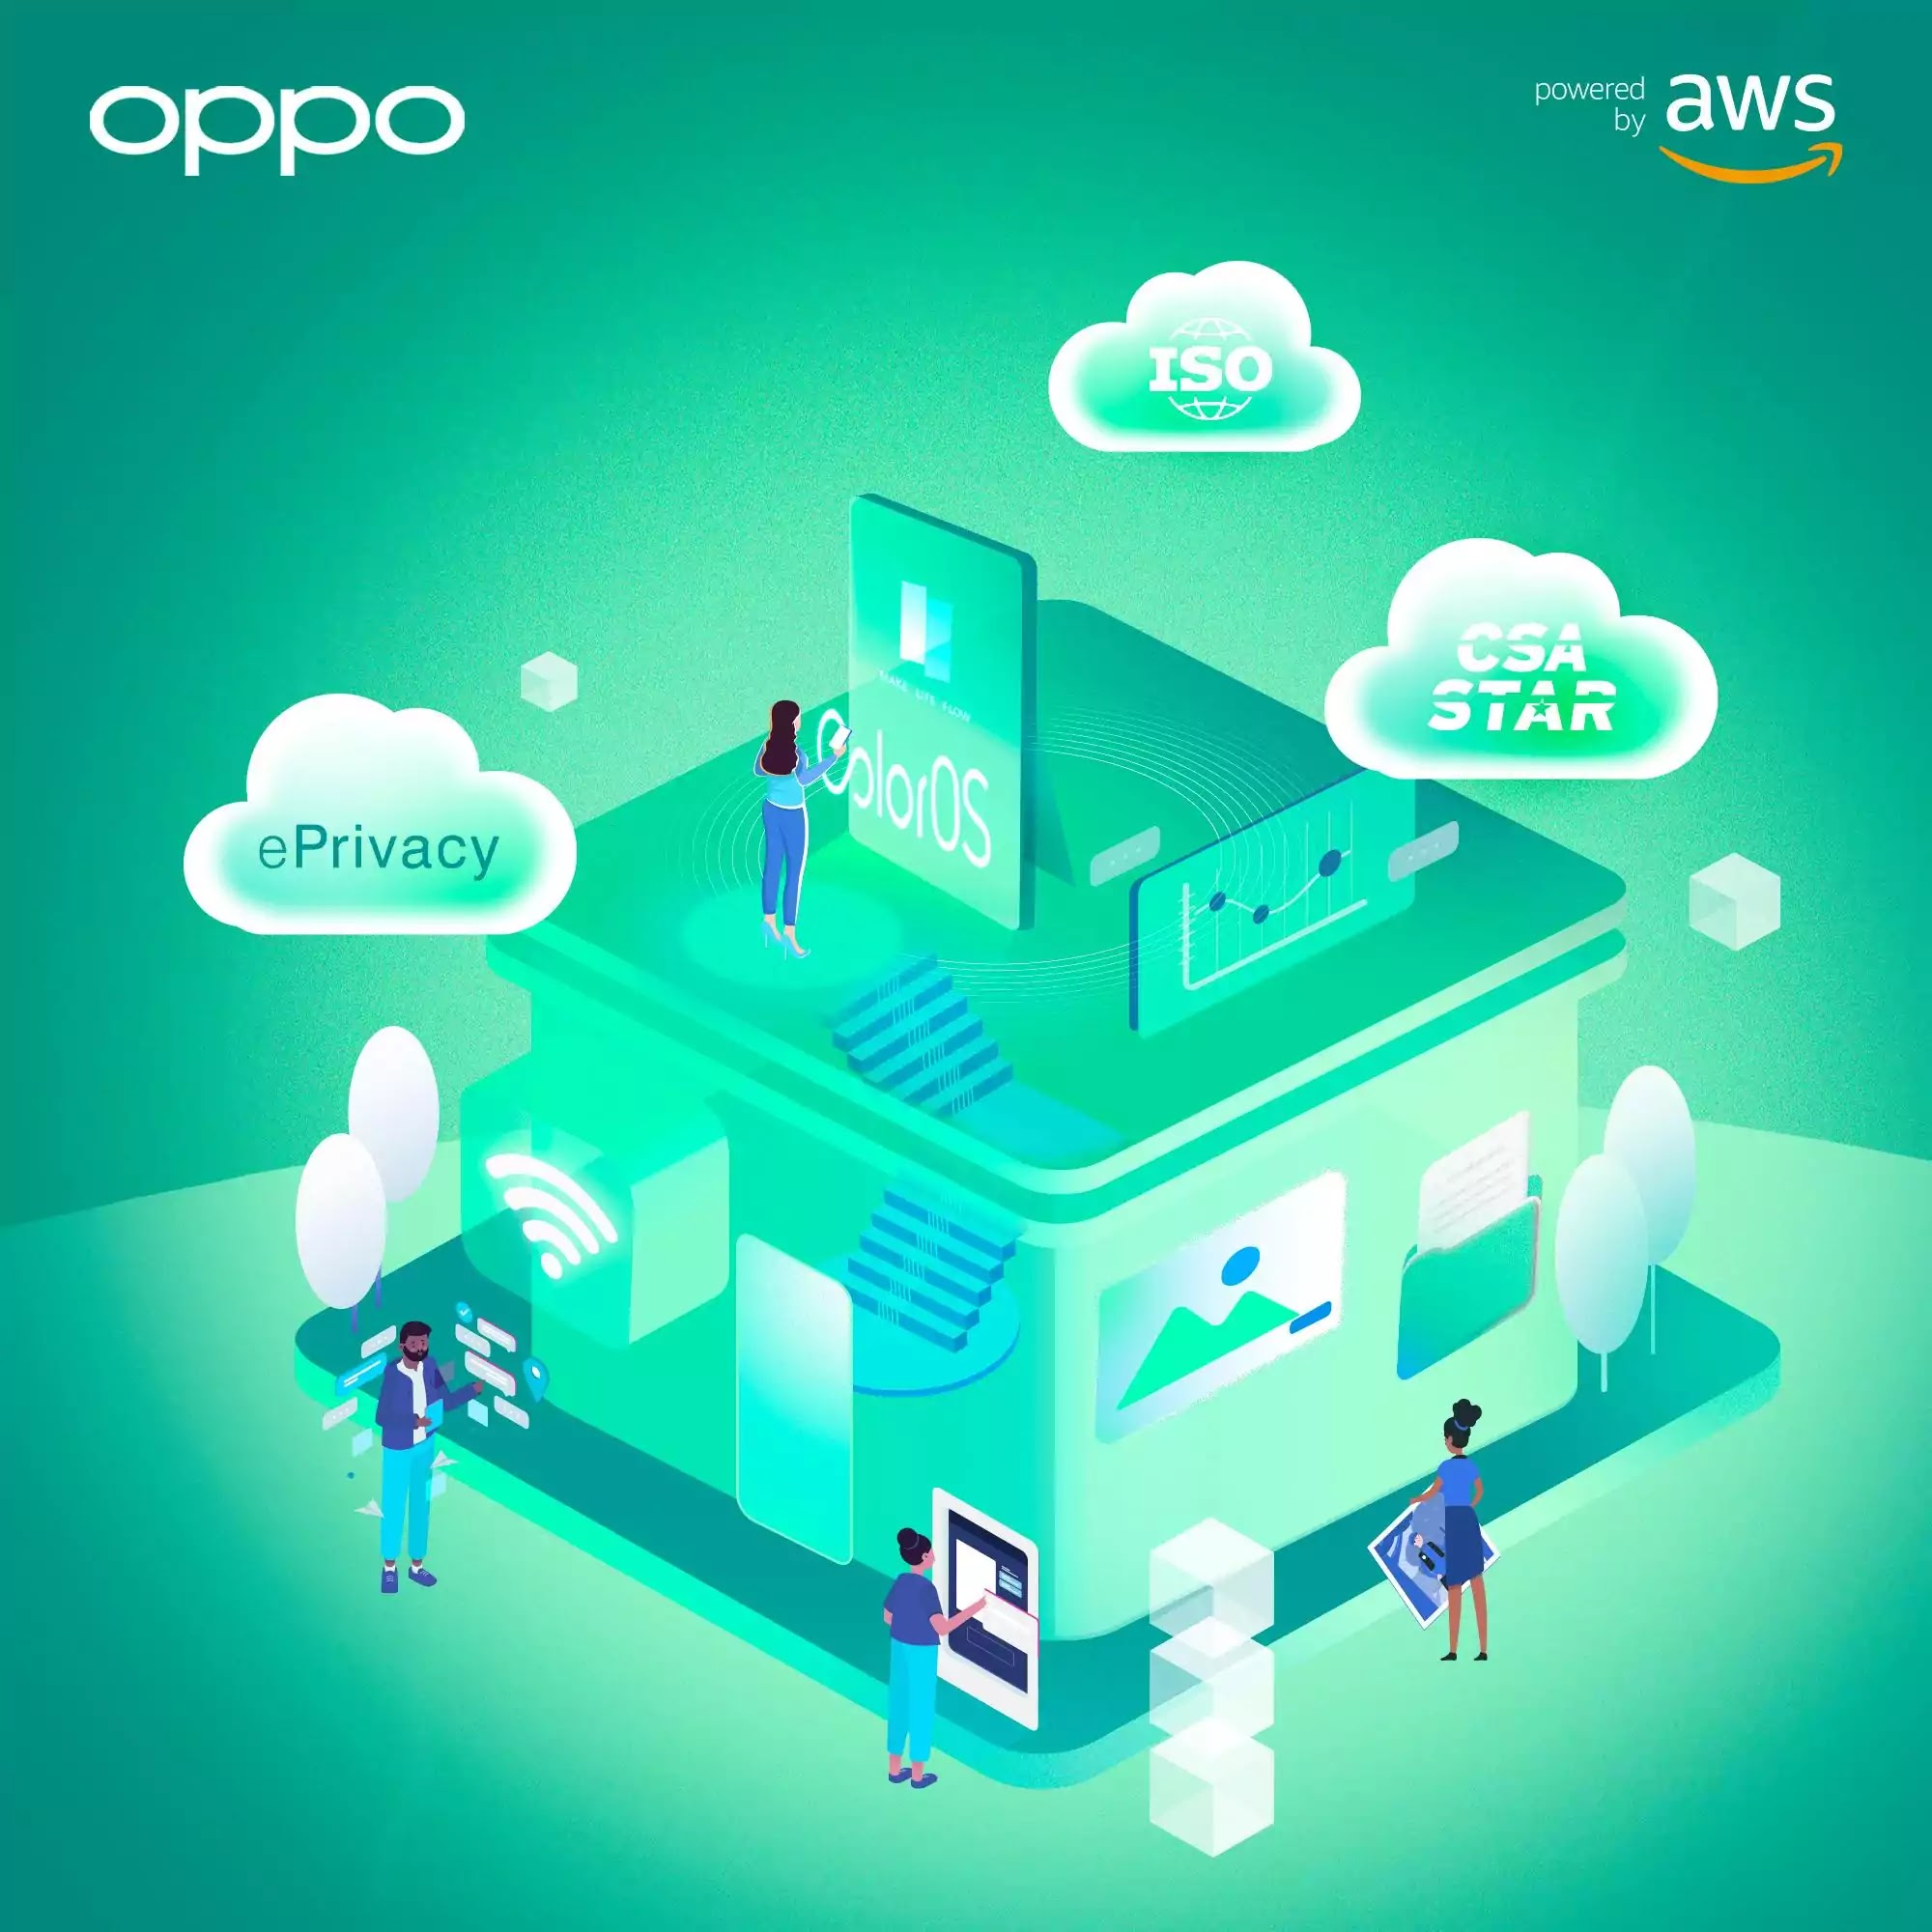 OPPO partners with Amazon Web Services